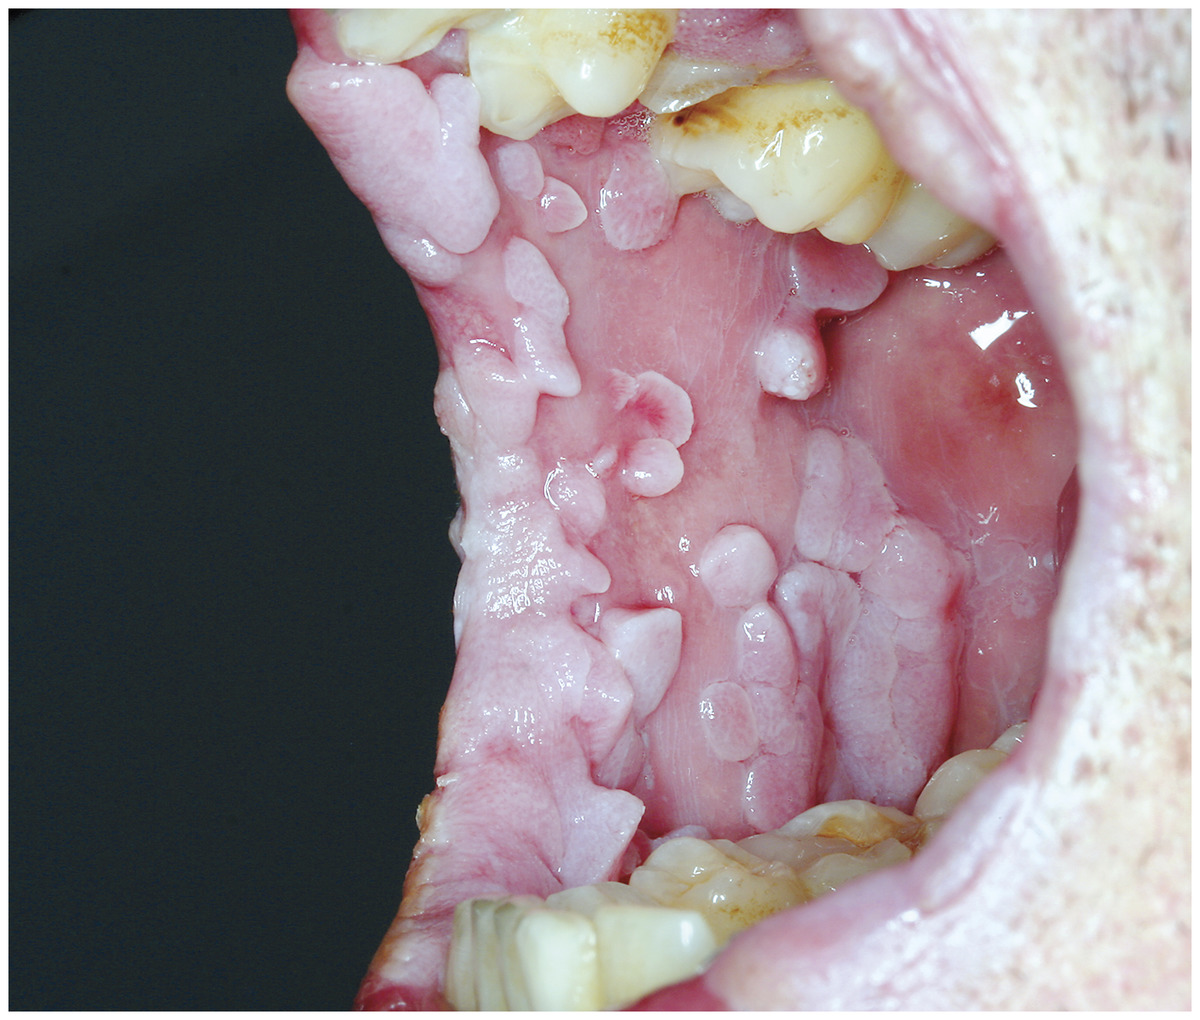 Hpv papilloma in throat - Hpv mouth throat